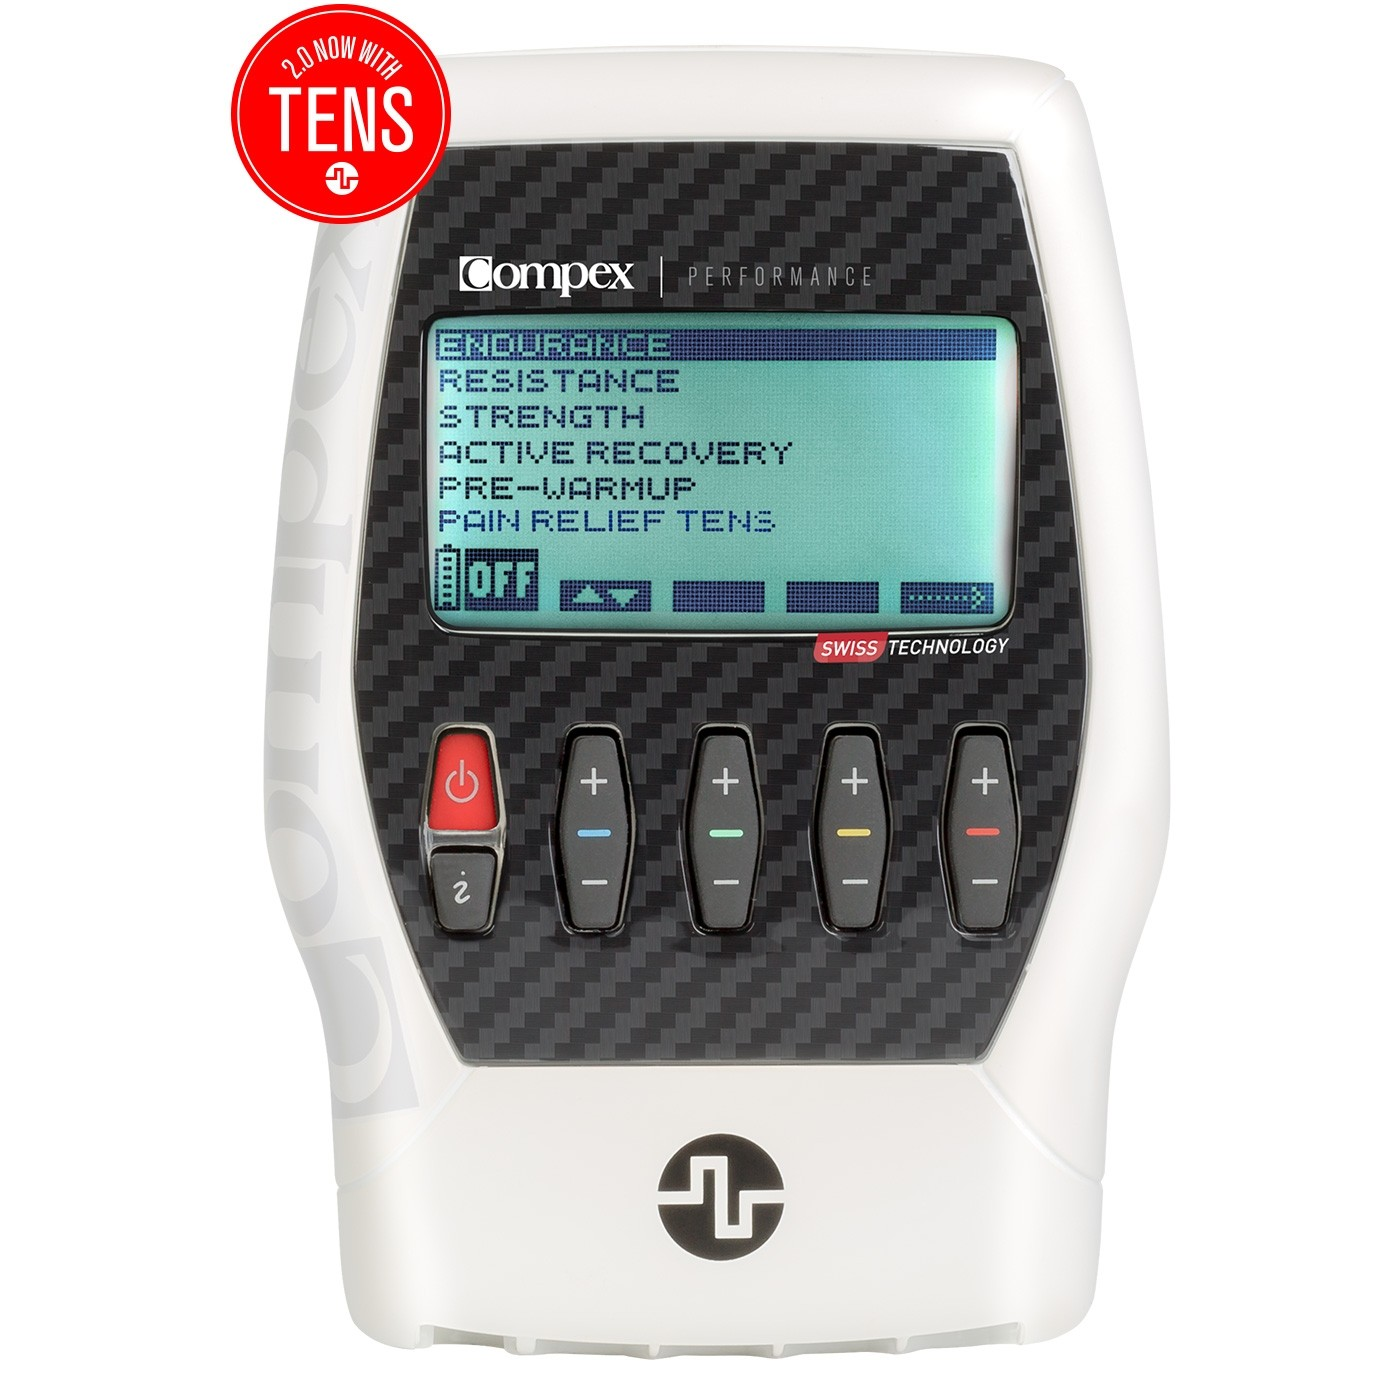 COMPEX PERFORMANCE 2.0 MUSCLE STIMULATOR KIT WITH TENS